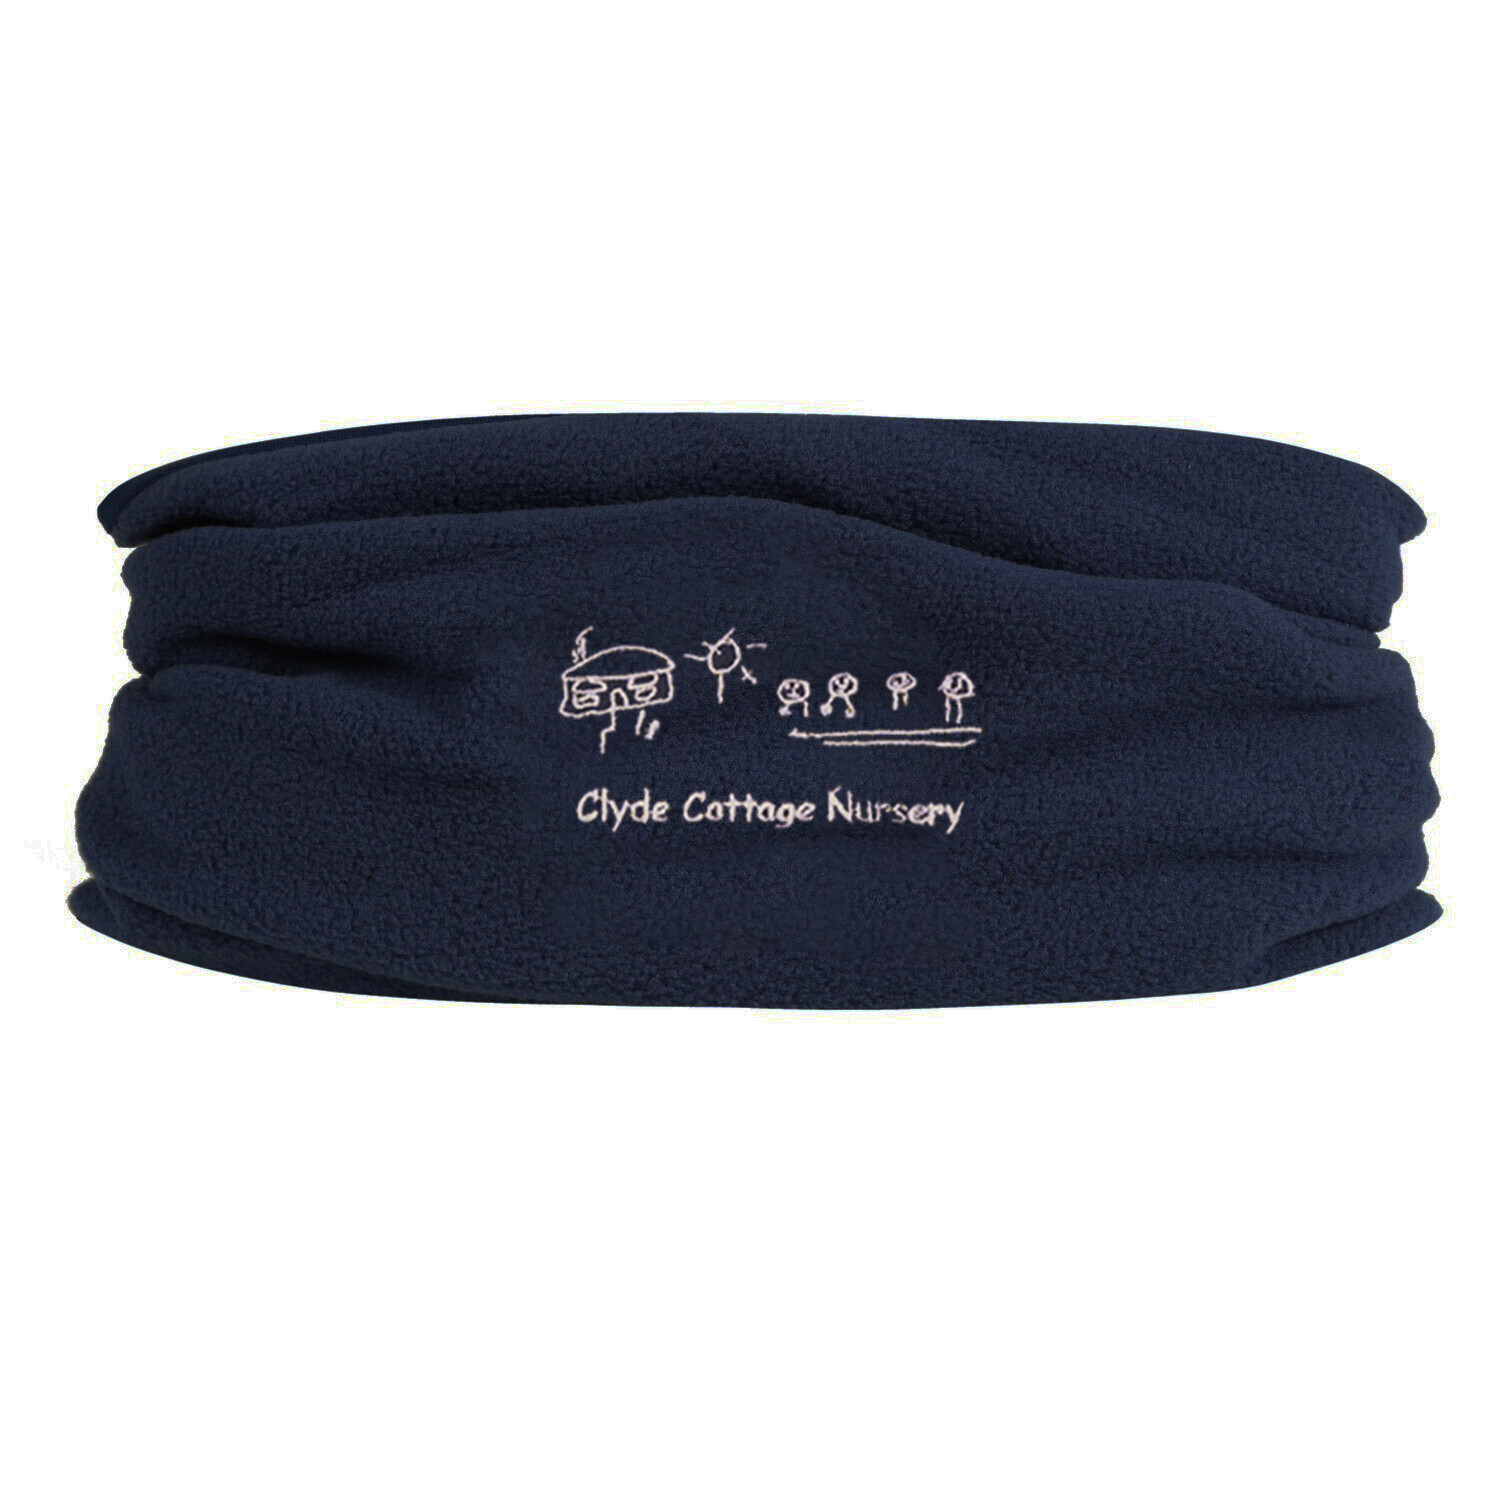 Clyde Cottage Nursery Staff Snood (RCSB920)